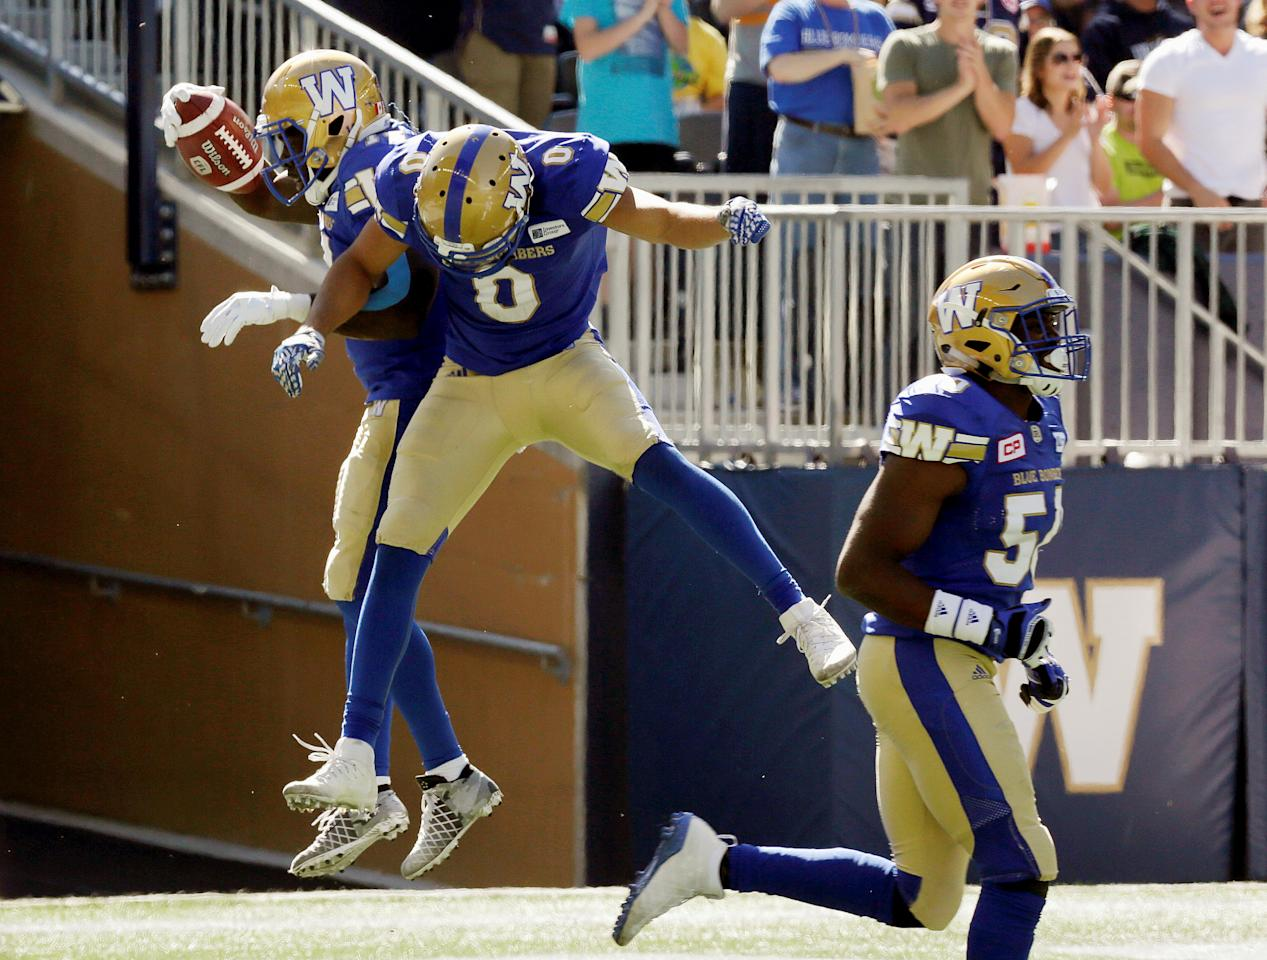 CFL Football - Winnipeg Blue Bombers v Toronto Argonauts - Winnipeg, Manitoba, Canada - 17/9/16 - Winnipeg Blue Bombers Quincy McDuffie celebrates his 98 yard kickoff return for a touchdown with teammates Derek Jones and Kyle Knox.   REUTERS/Lyle Stafford